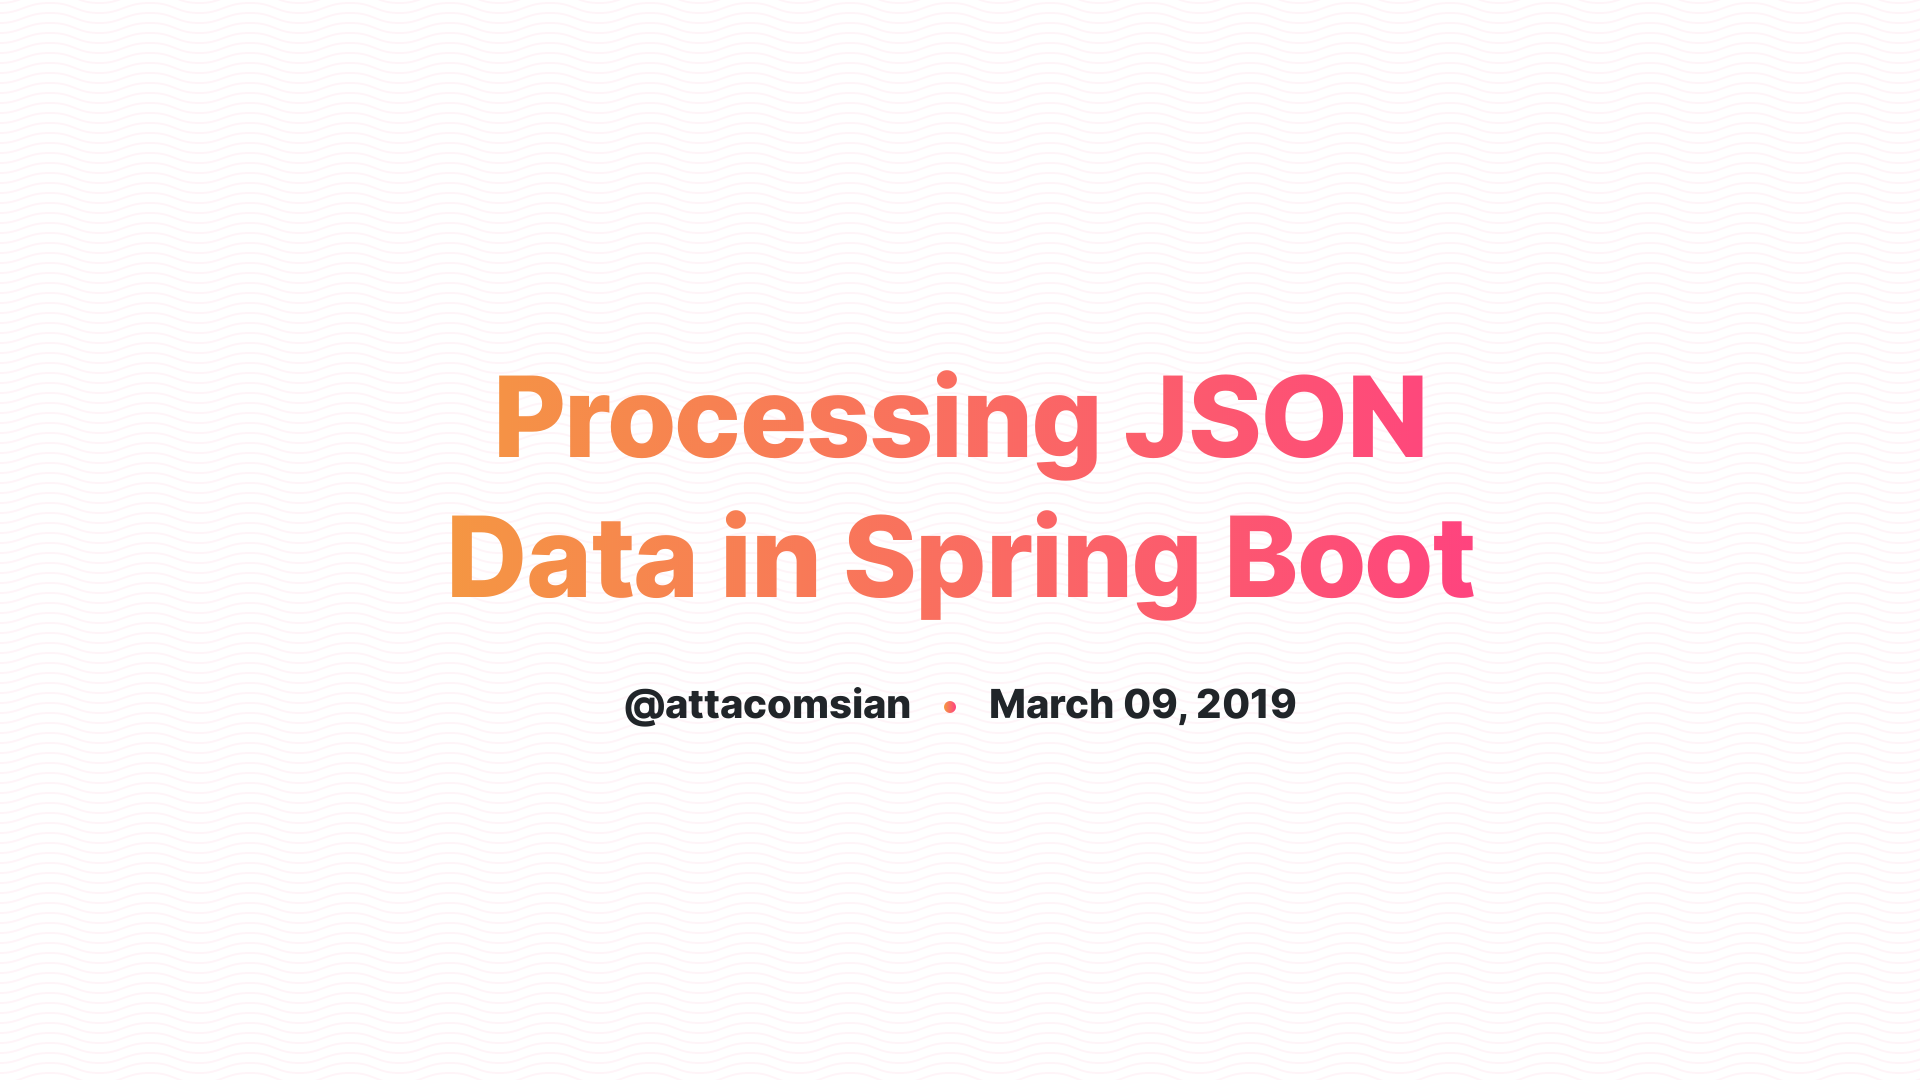 Processing JSON Data in Spring Boot